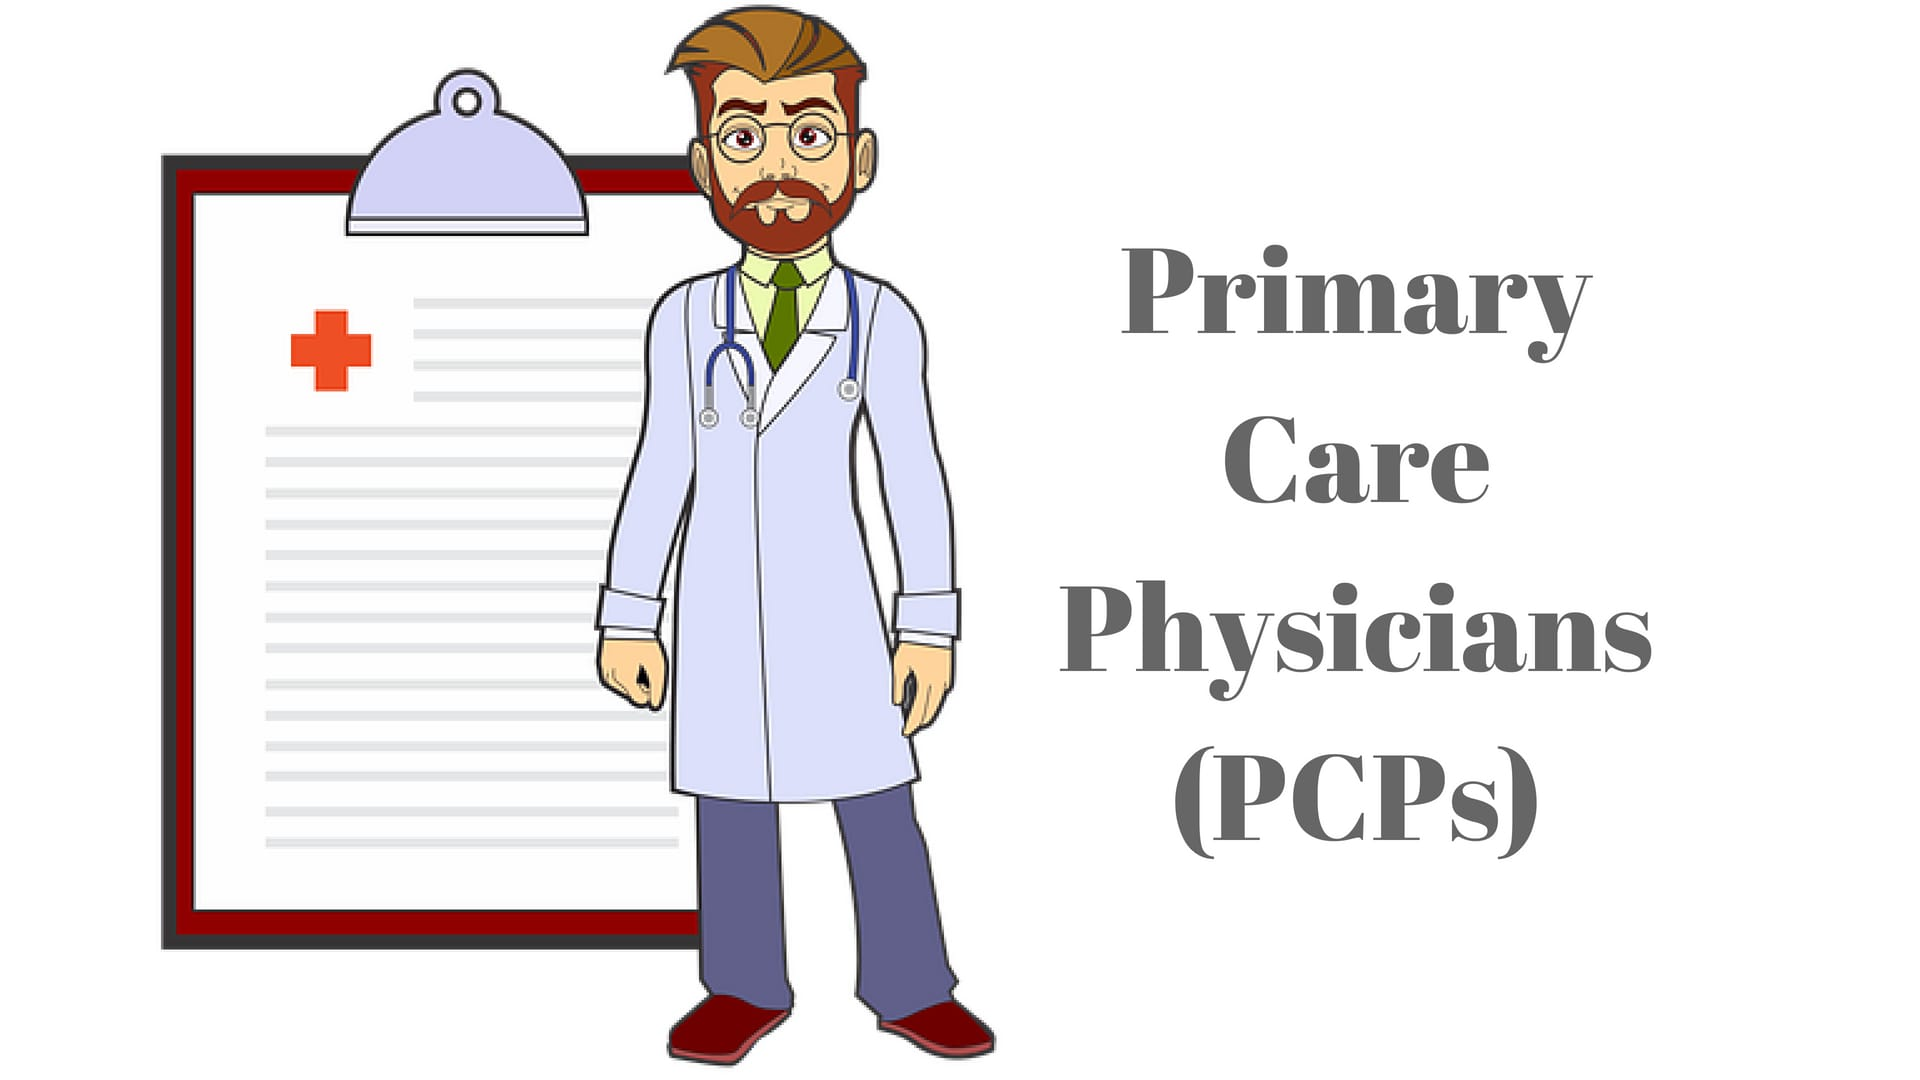 Primary Care Physicians Image